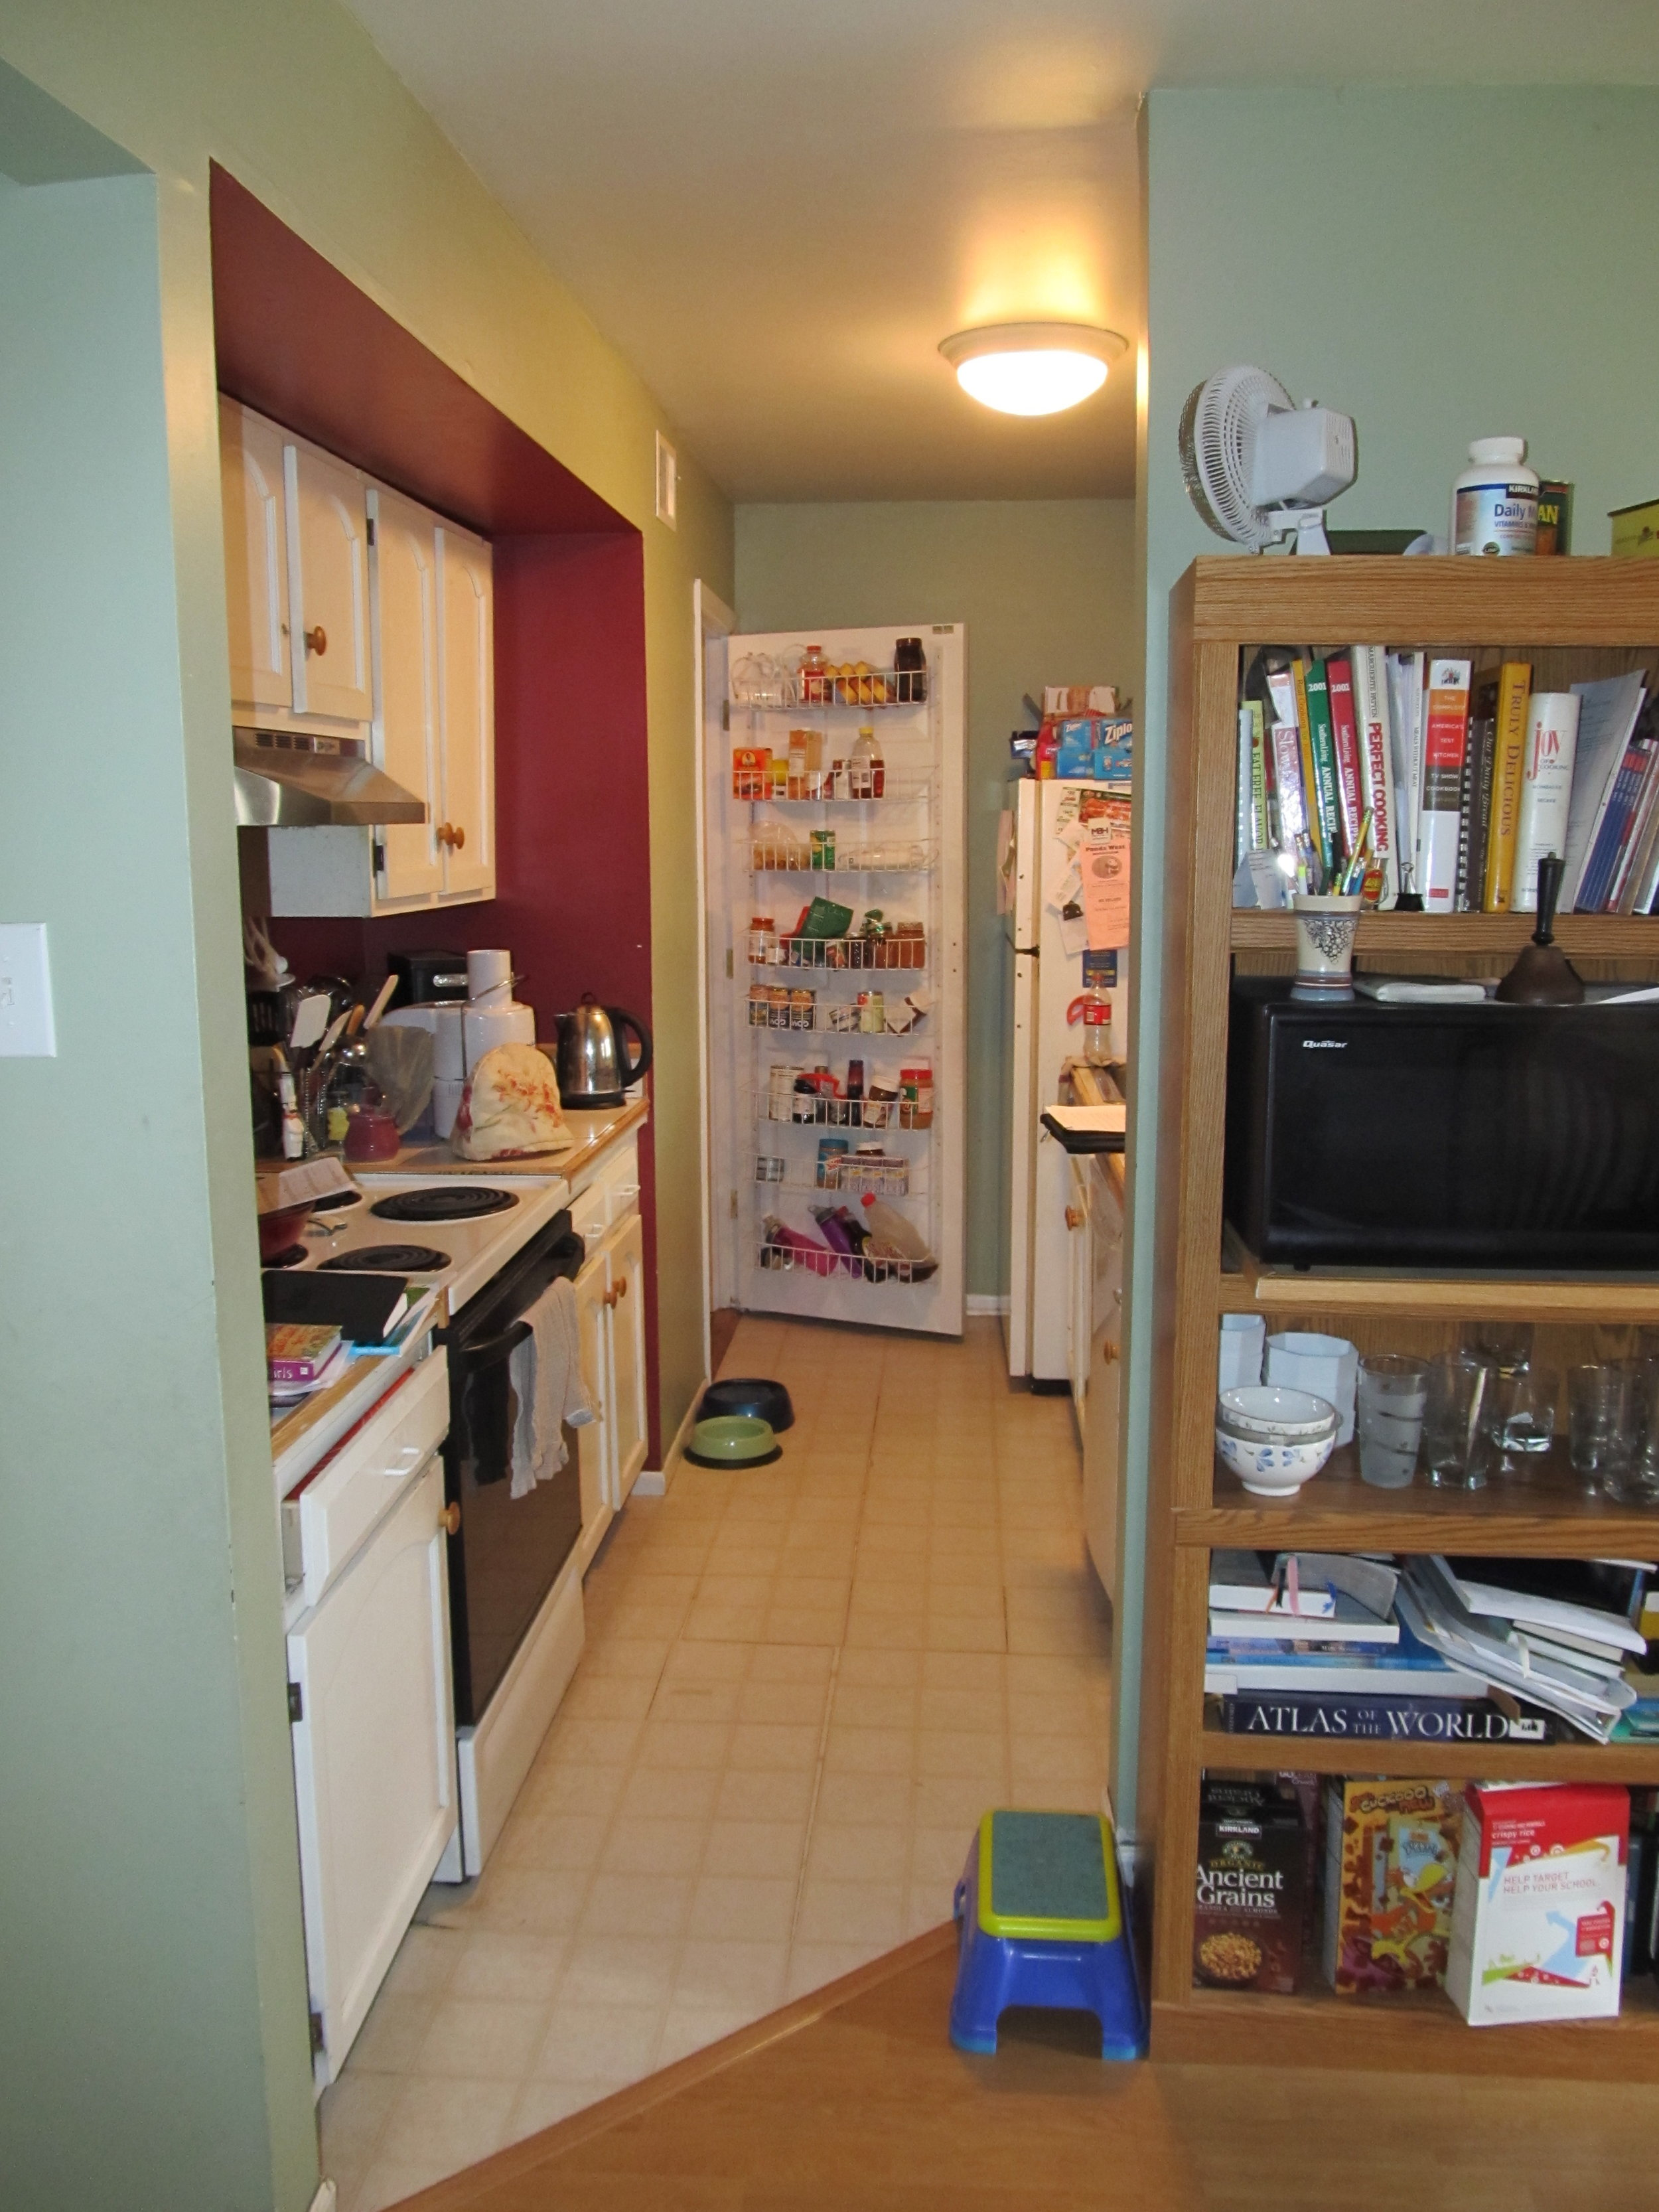 Small Cluttered Tight Kitchen Before Renovation Photo